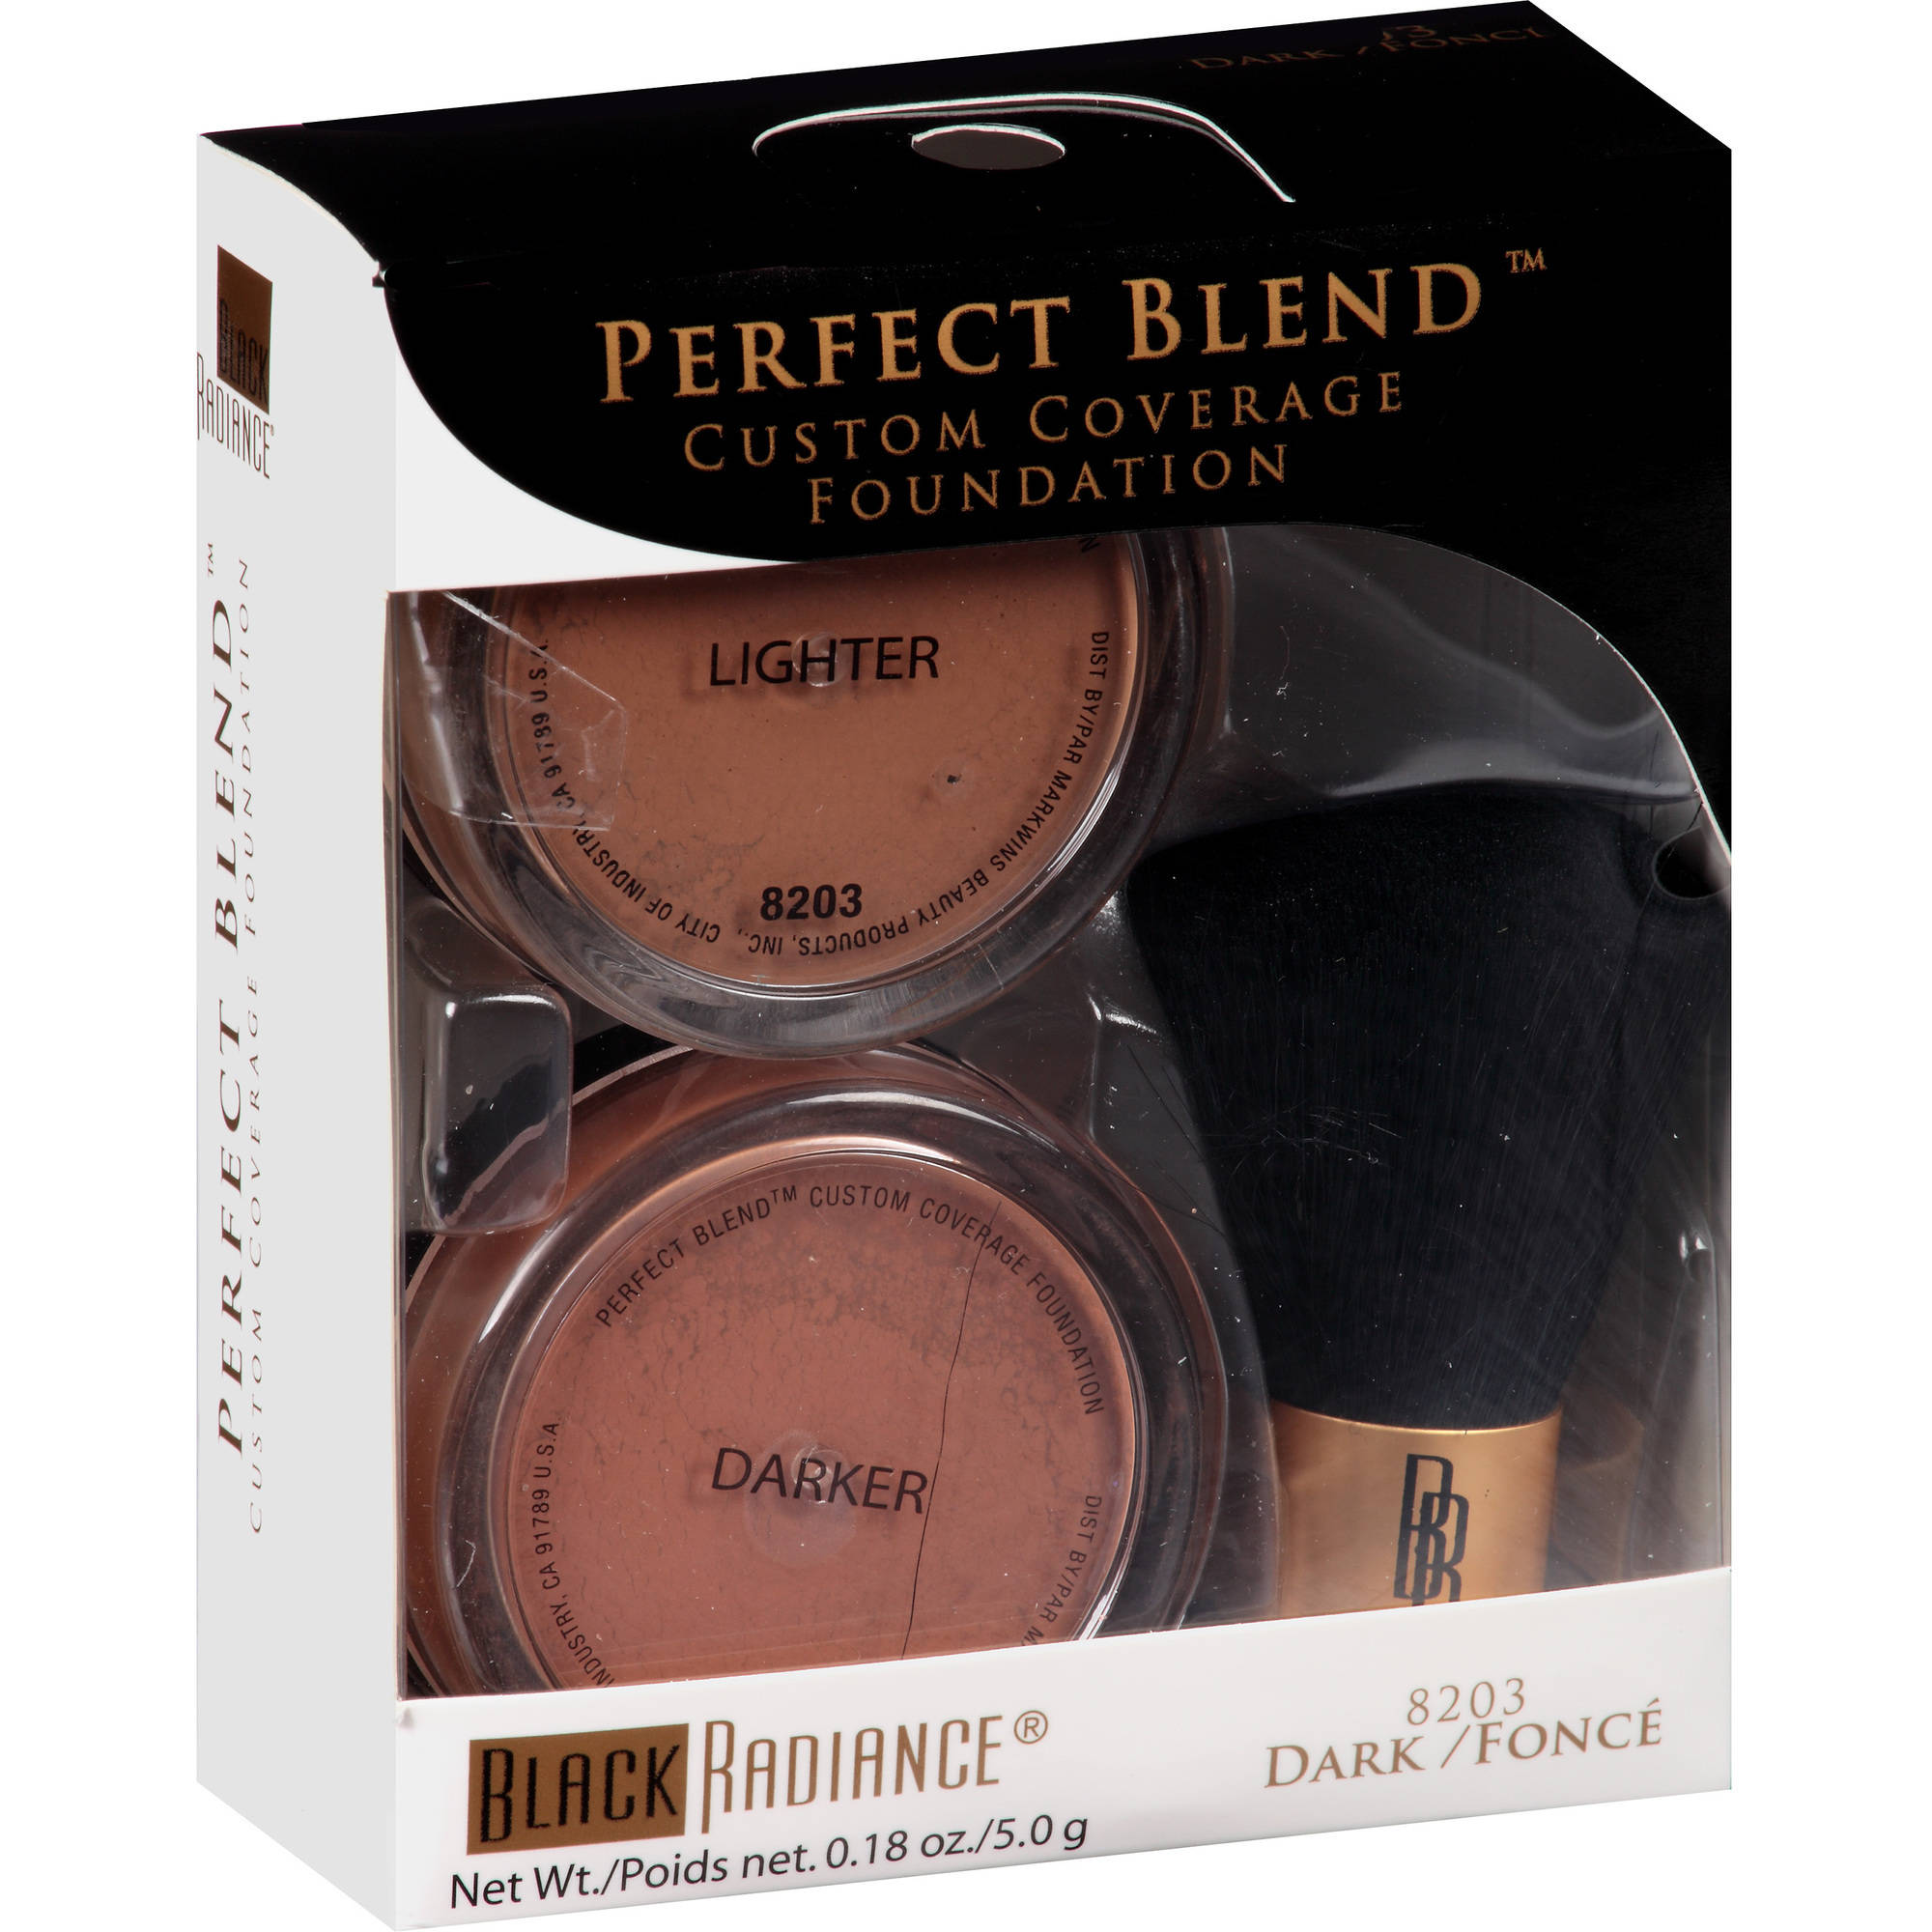 Black Radiance Perfect Blend Mineral Foundation, 8203 Dark, 0.18 oz